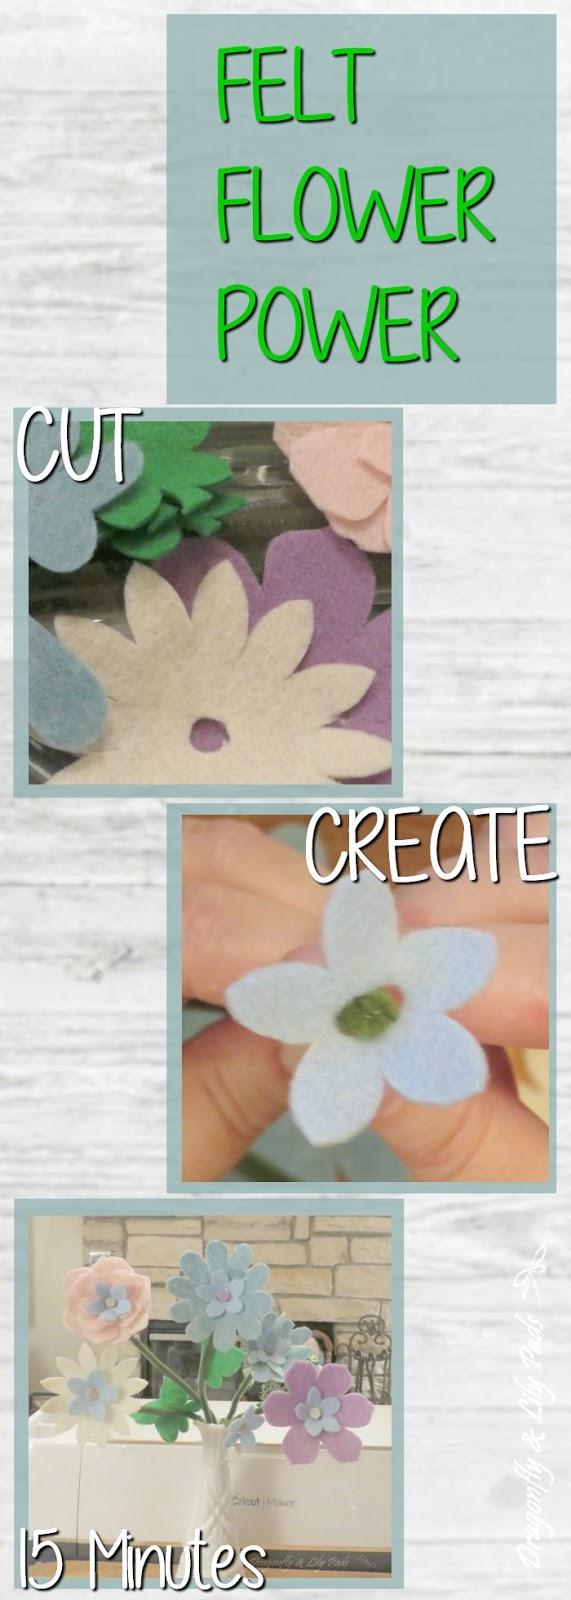 Felt Flower Power Cut the Felt with Cricut Maker, Create with Flower Shapes, Enjoy this quick 15 minute breath of Spring Pinterest friendly image